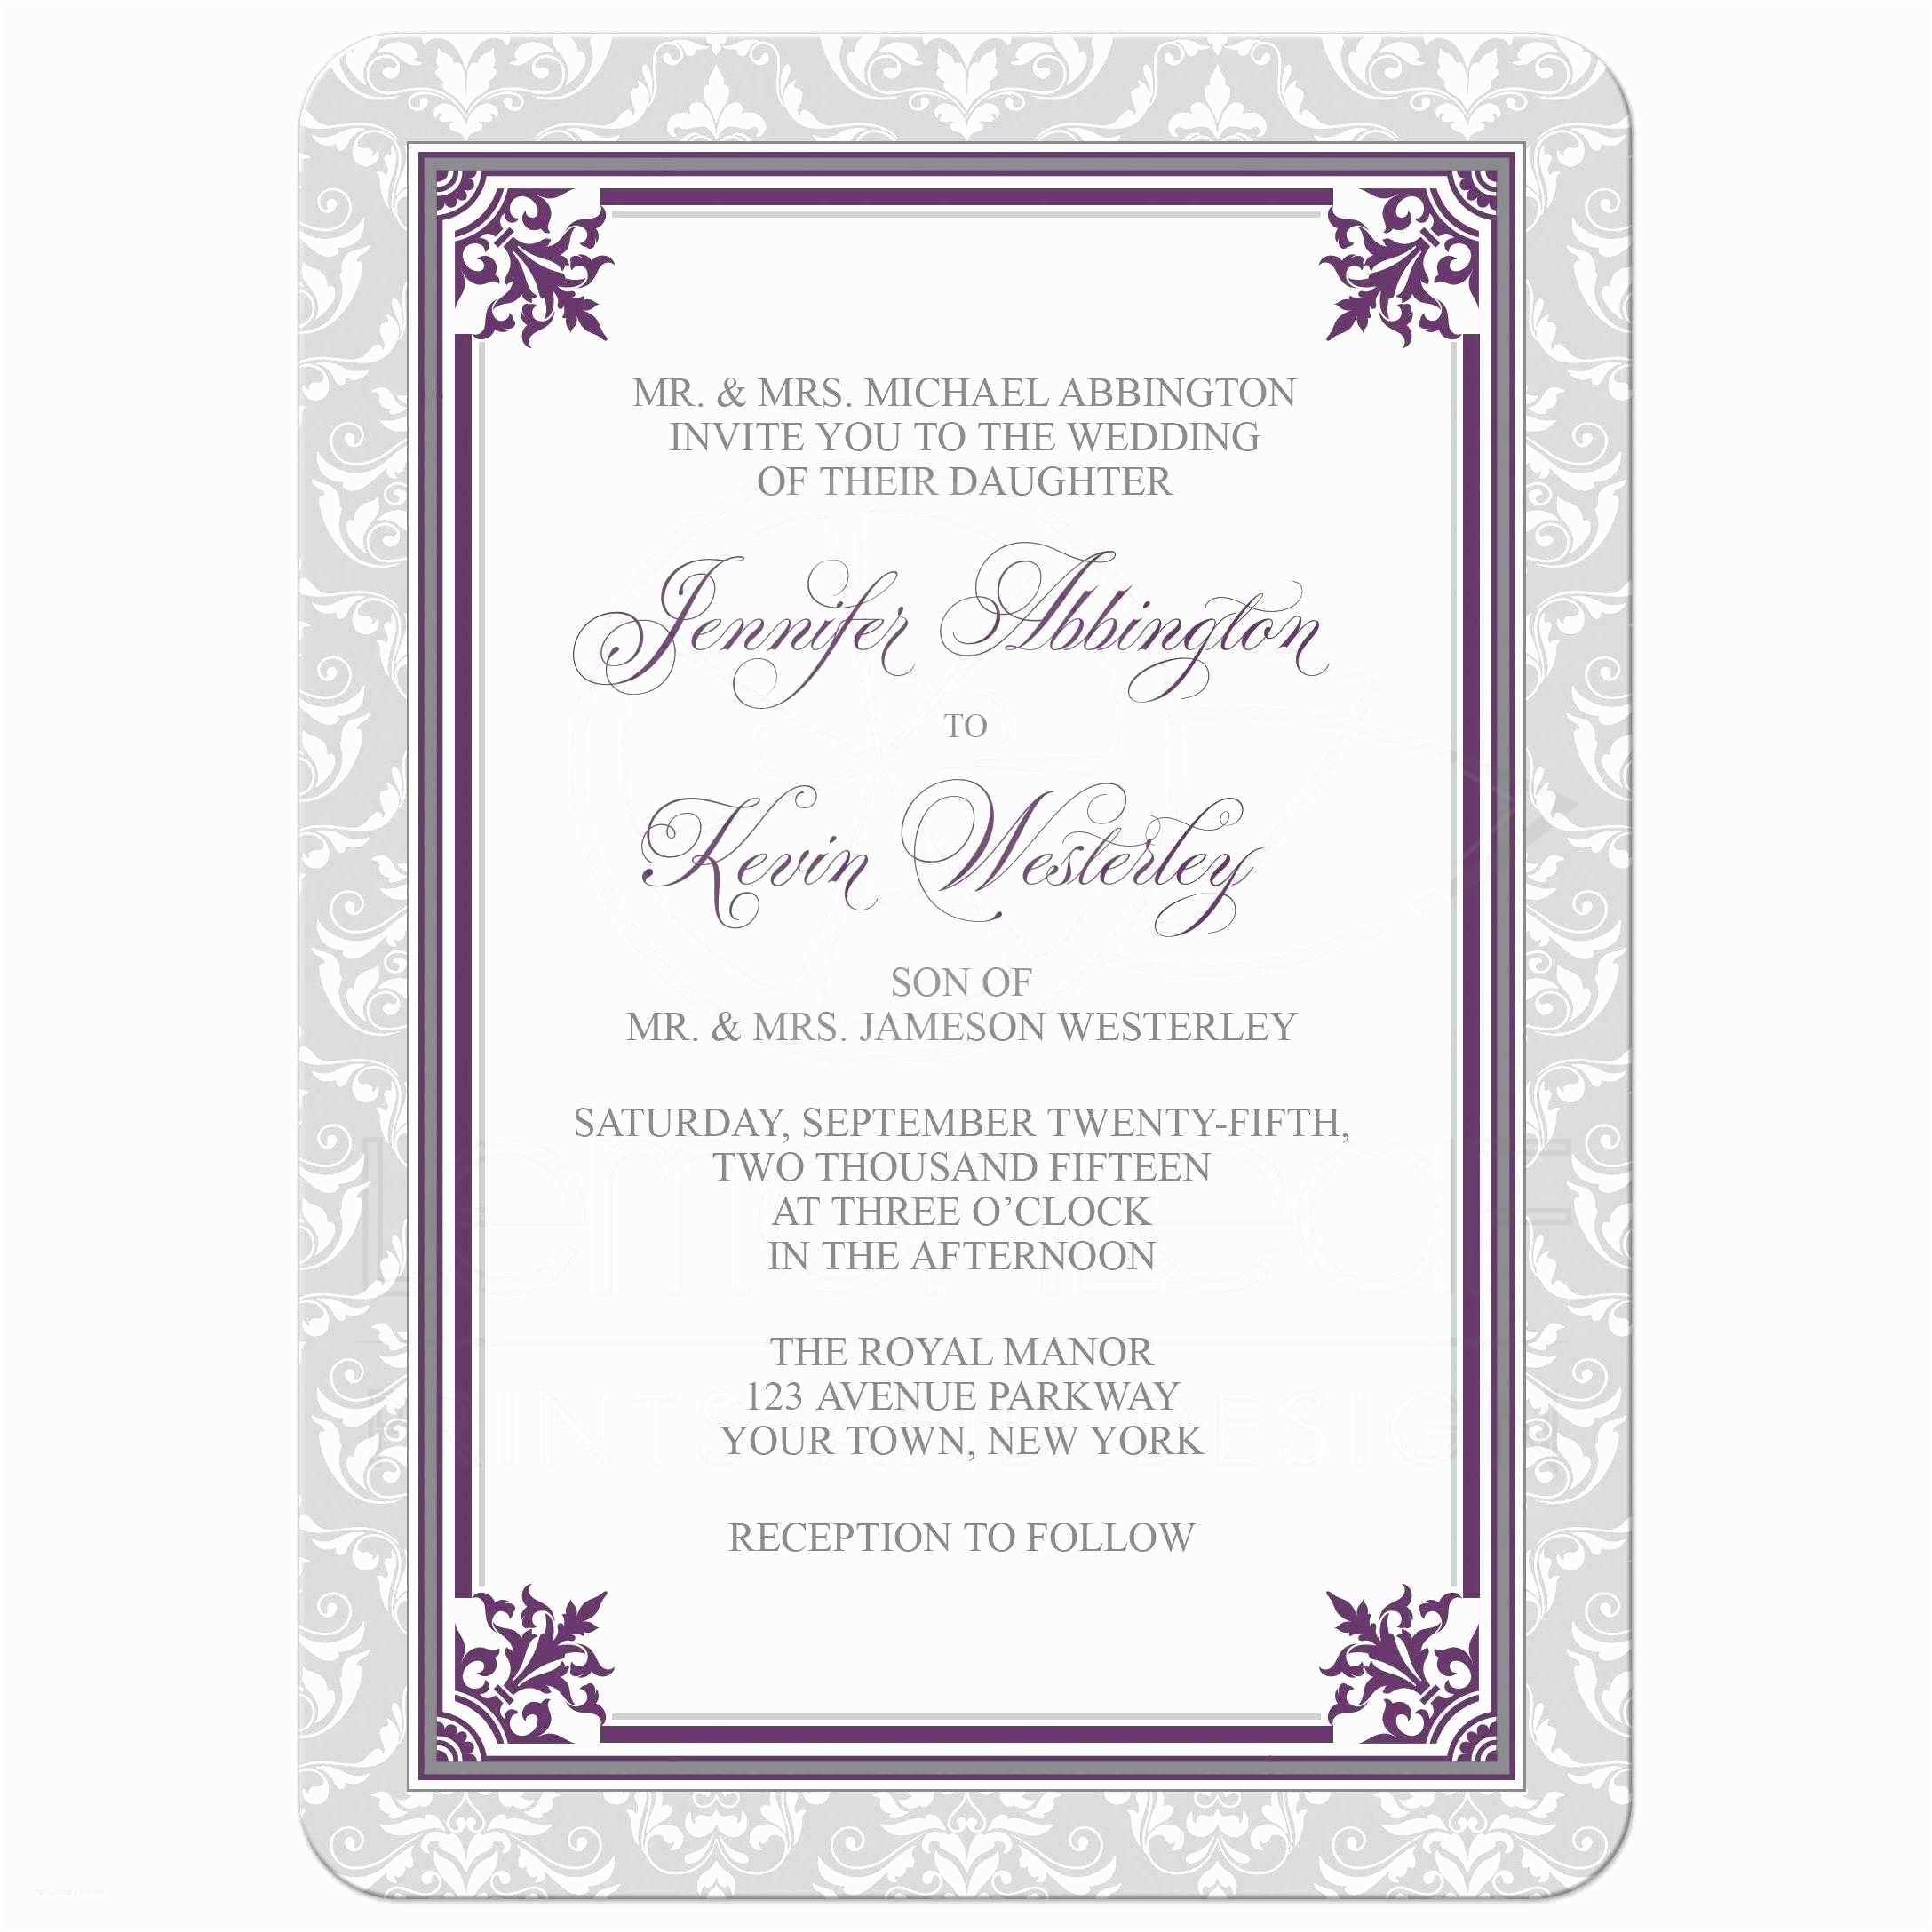 Purple and Gray Wedding Invitations Wedding Invitations Plum Purple and Gray Elegant Damask